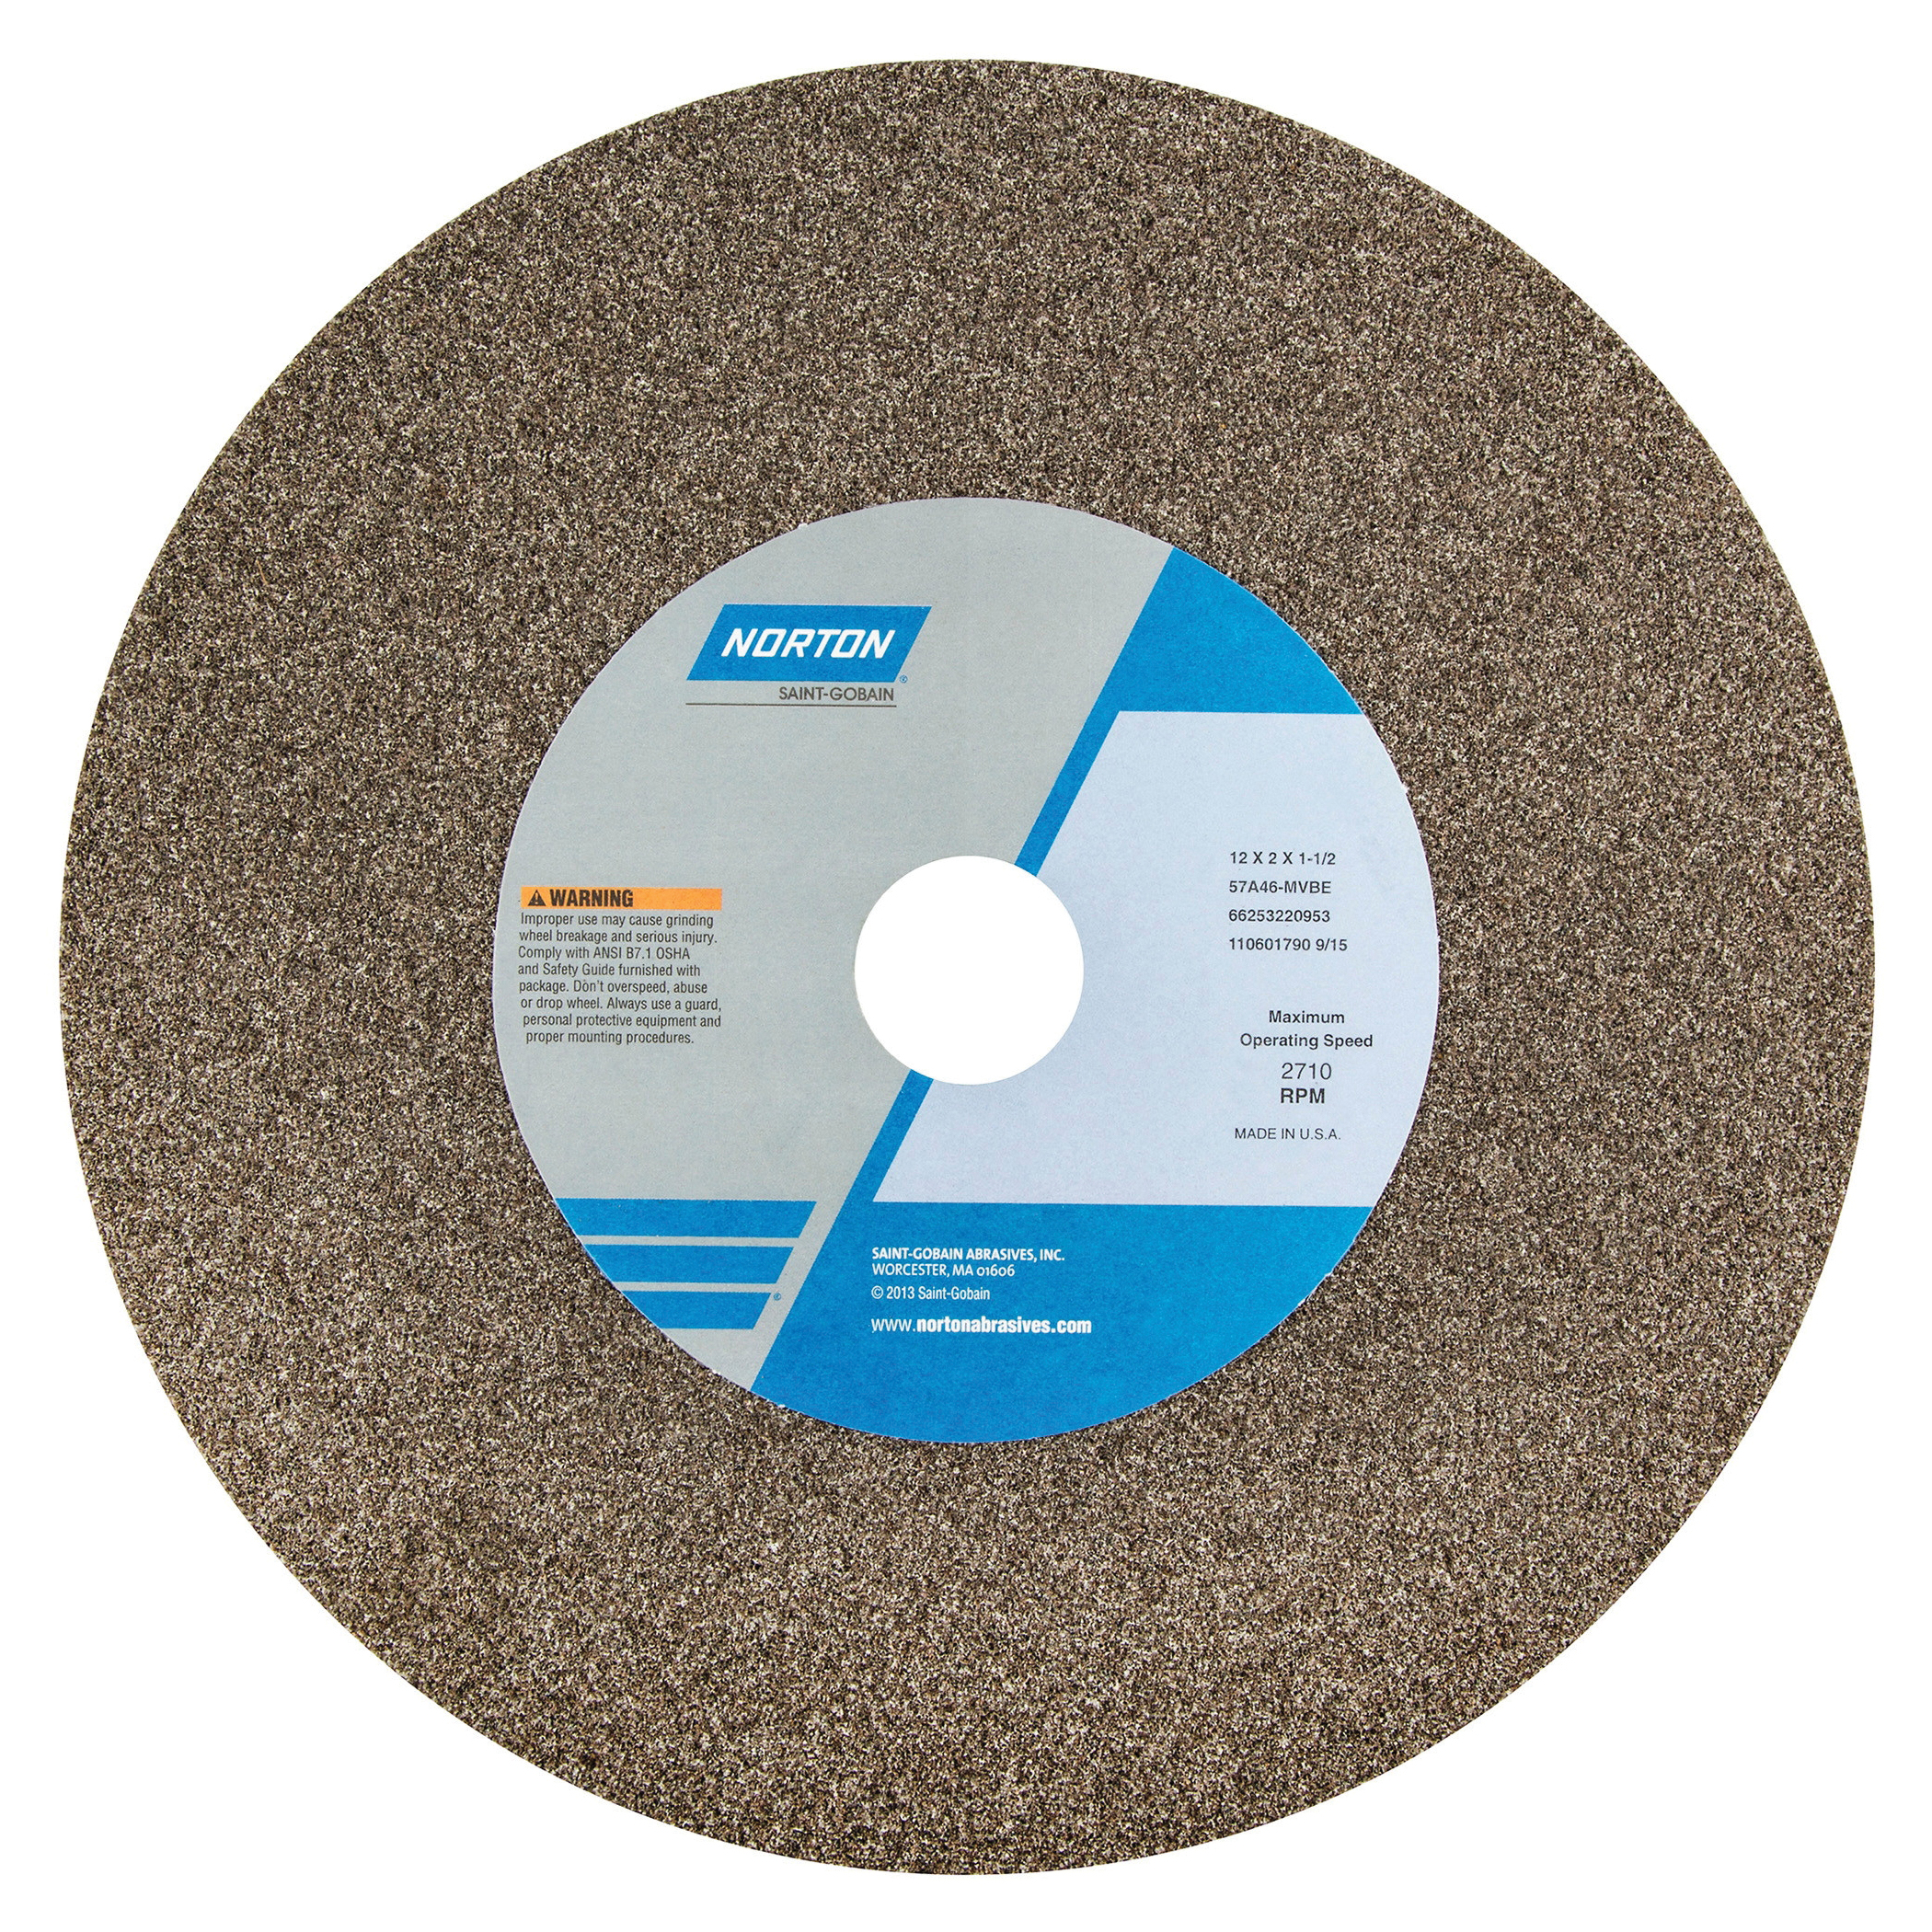 Norton® 66253220953 57A Type 01 Bench and Pedestal Grinding Wheel, 12 in Dia x 2 in THK, 1-1/2 in Center Hole, 46 Grit, Aluminum Oxide Abrasive